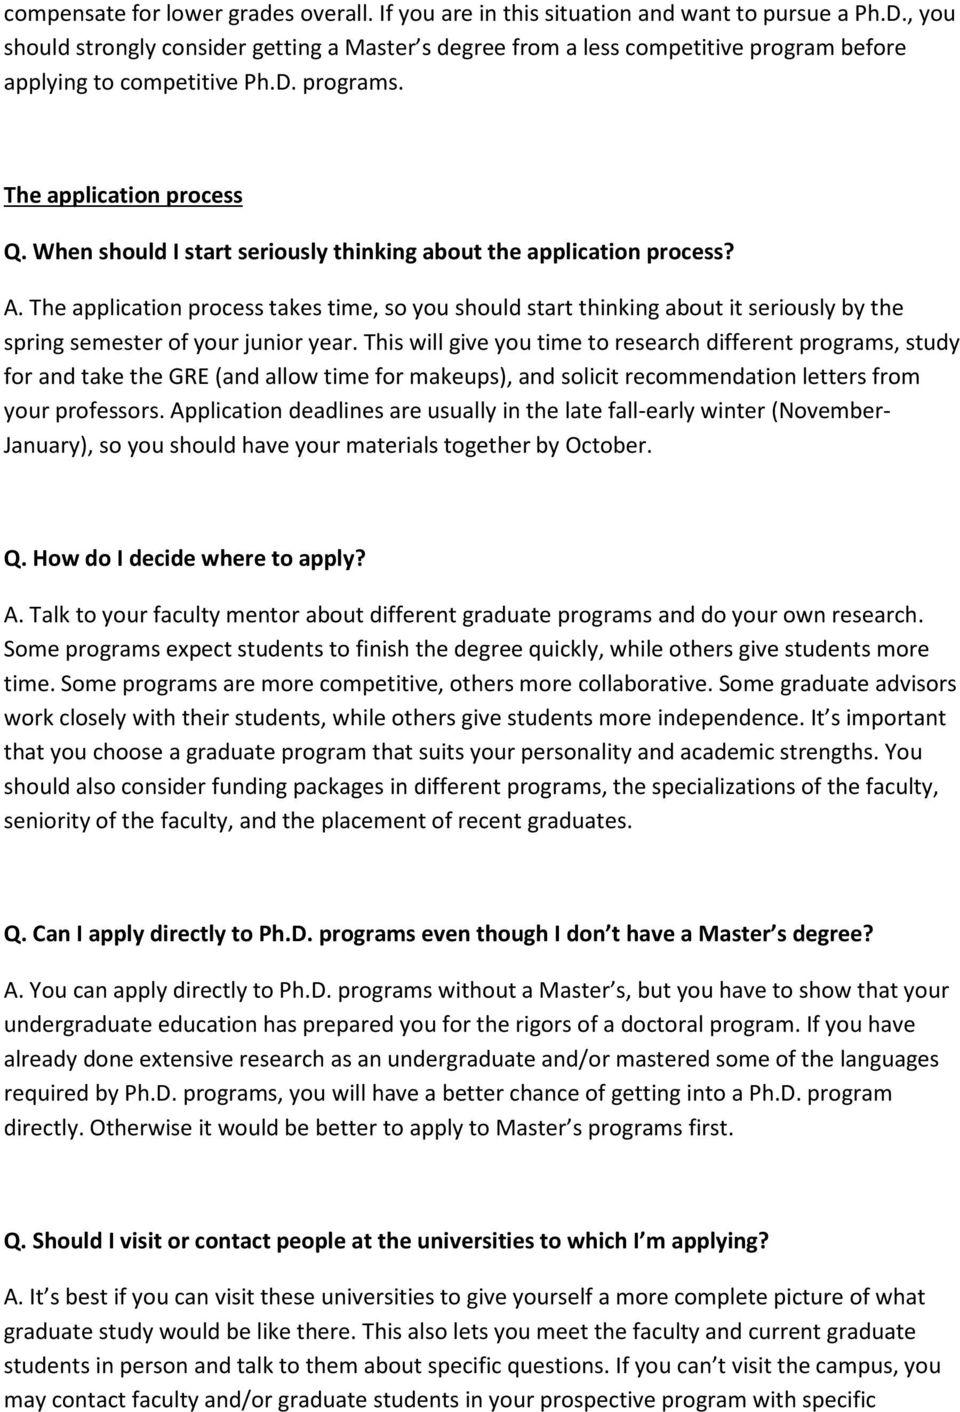 When should I start seriously thinking about the application process? A. The application process takes time, so you should start thinking about it seriously by the spring semester of your junior year.